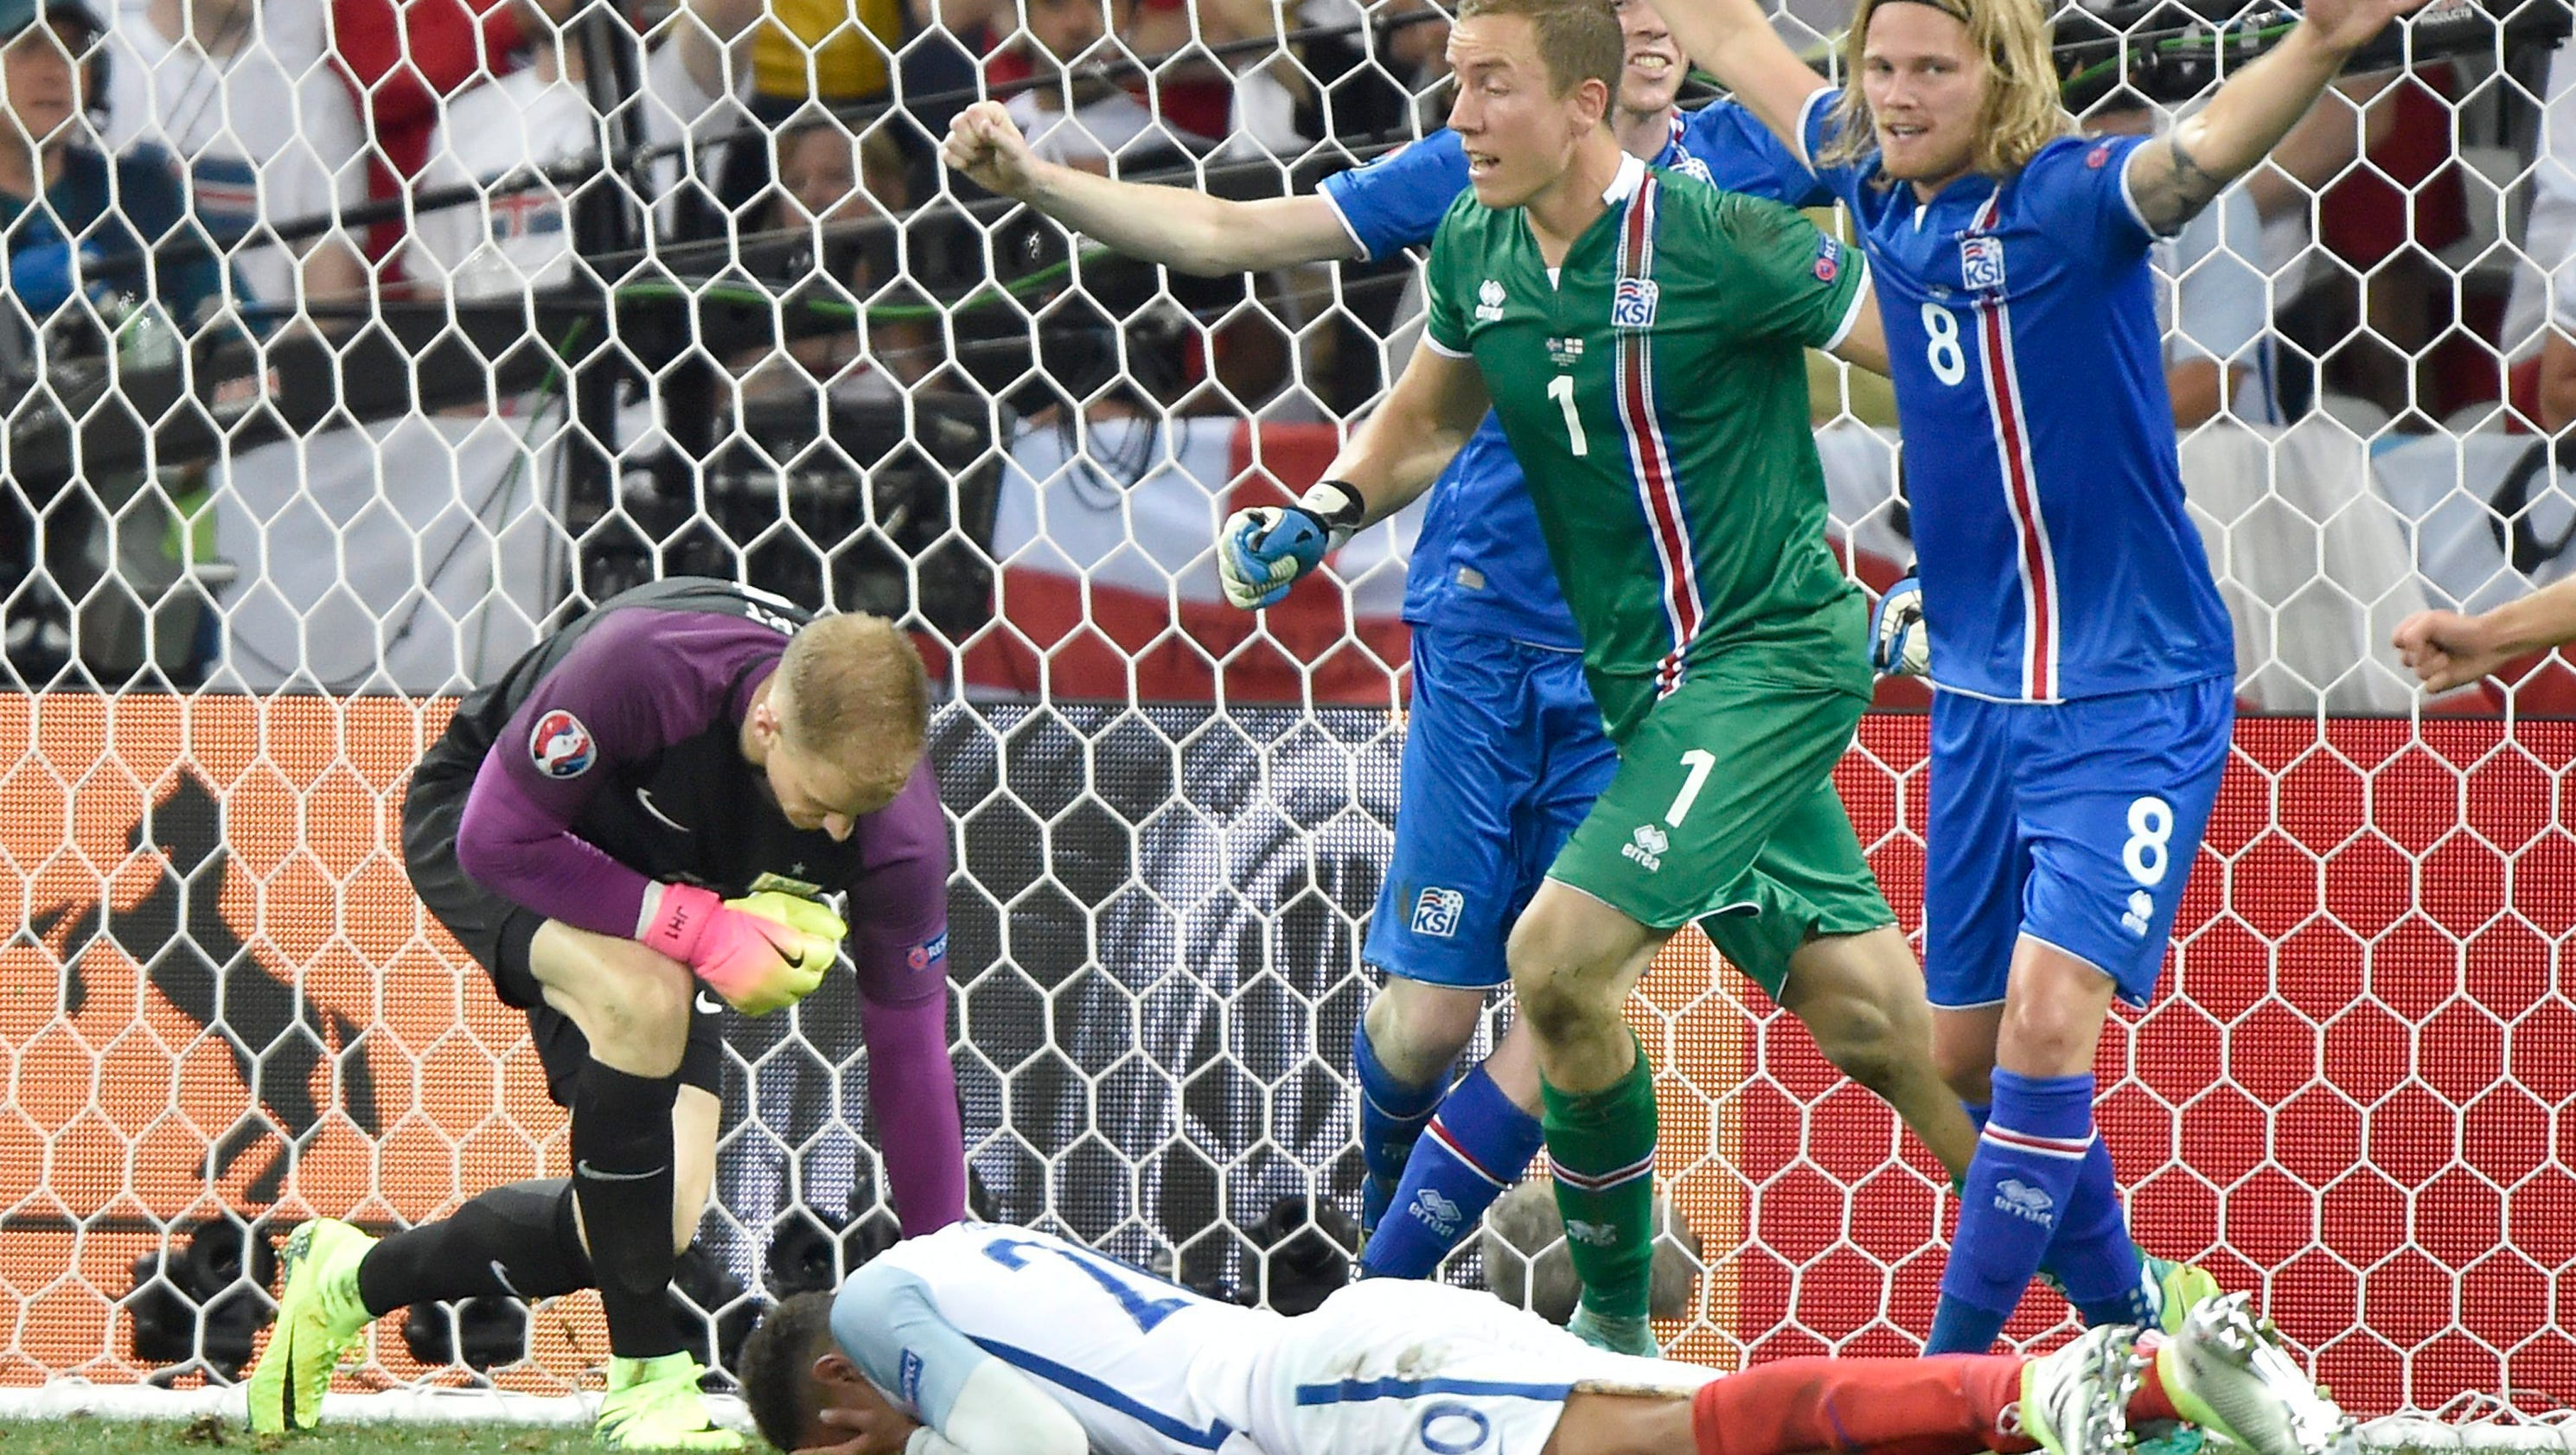 Iceland beats England 2-1 in shock of Euro 2016